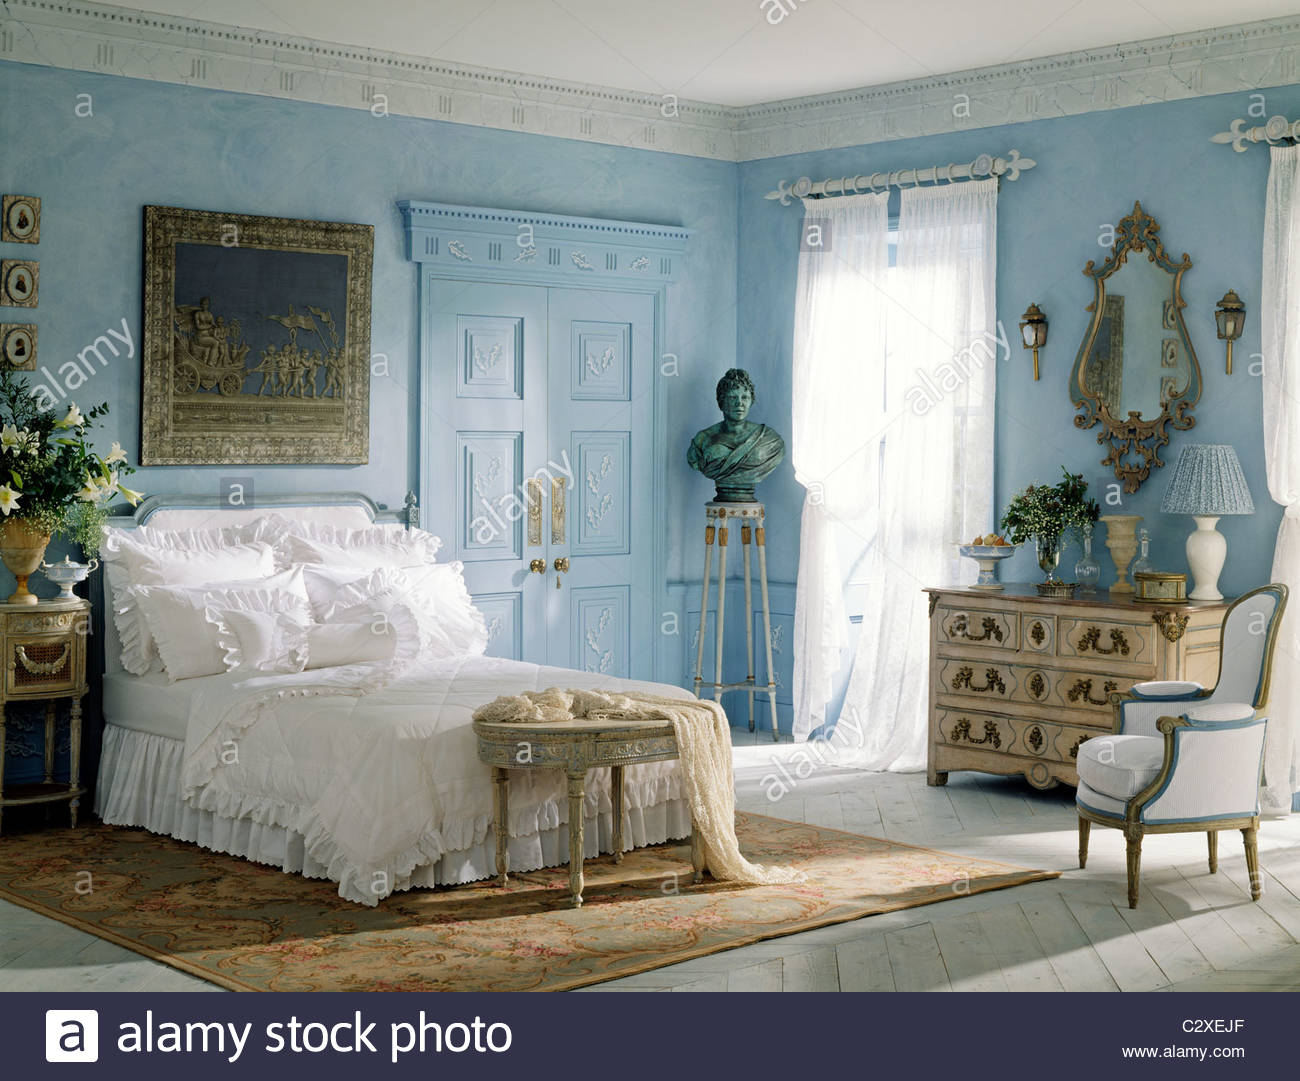 Blue white bedroom French style furniture Stock Photo: 36232295 - Alamy